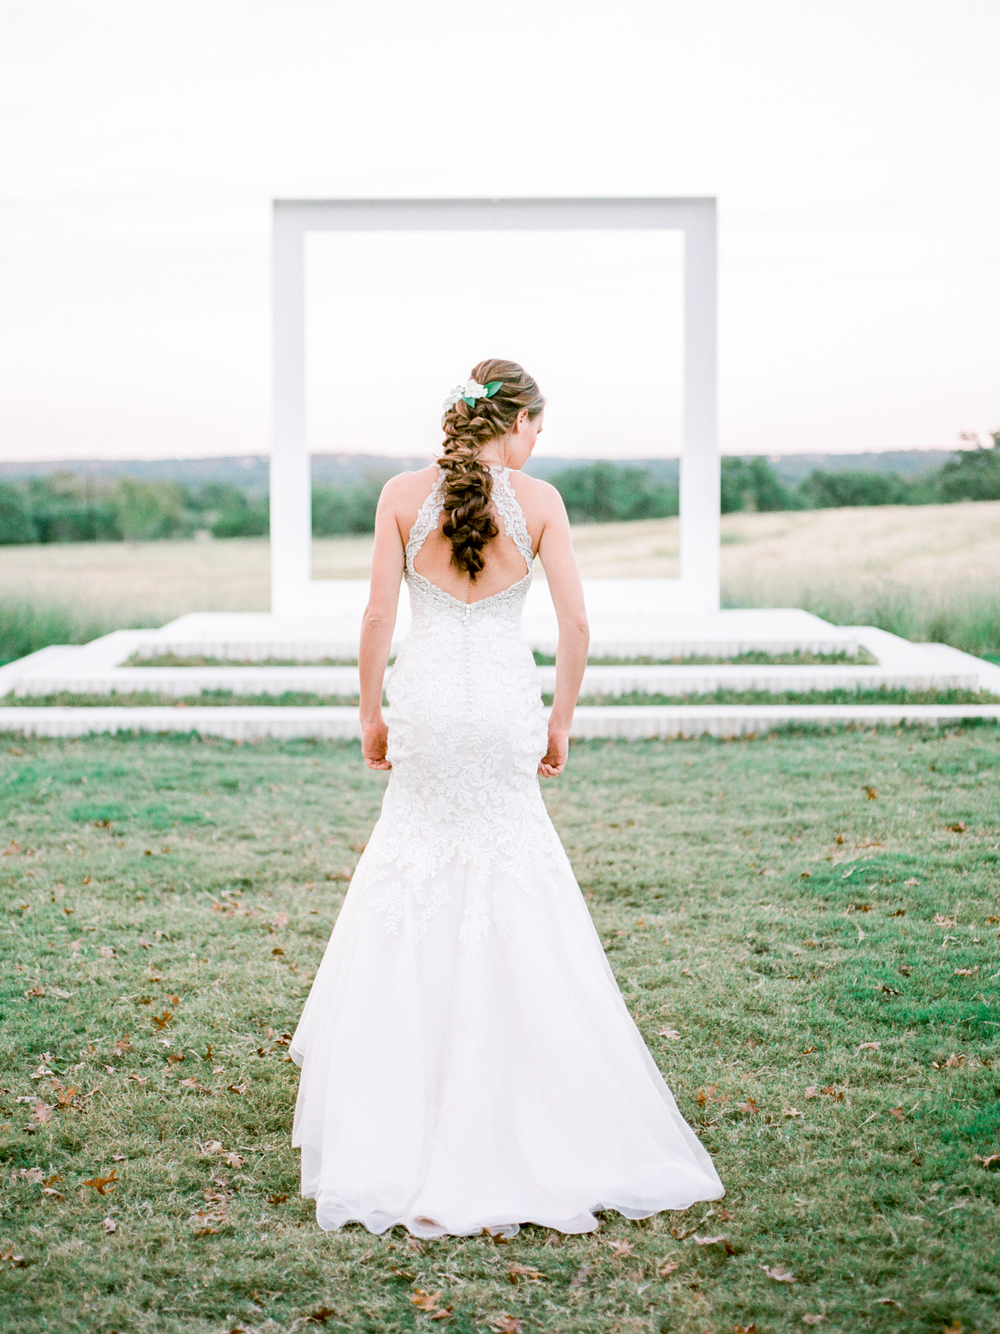 Austin-Bridal-Photographer-Alexa-Prospect-House-14.jpg